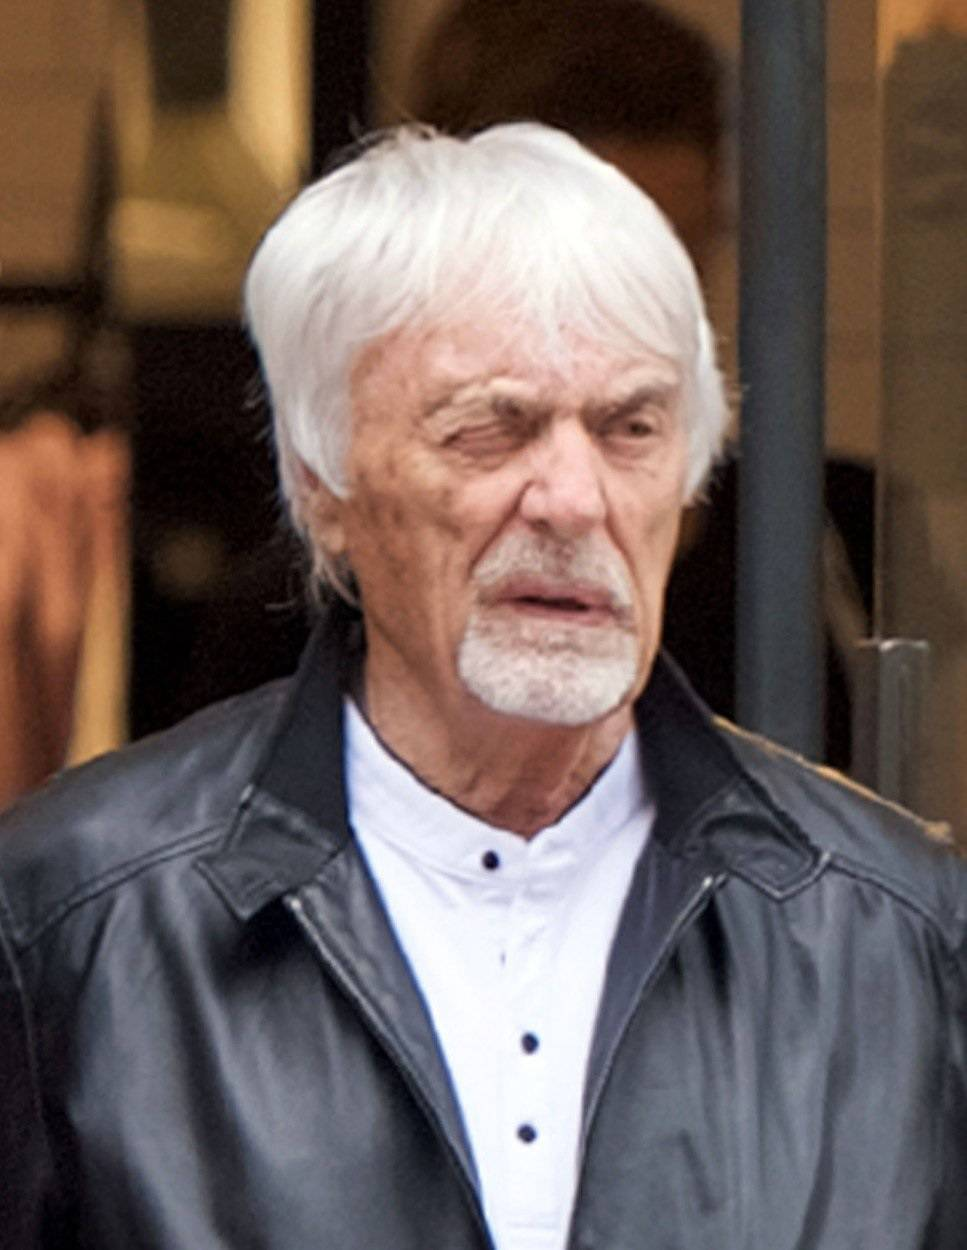 *EXCLUSIVE* Bernie Ecclestone, 88, seems to have a problem opening his right eye as he was seen shopping at Royal's favorite yoga clothing shop Lululemon.